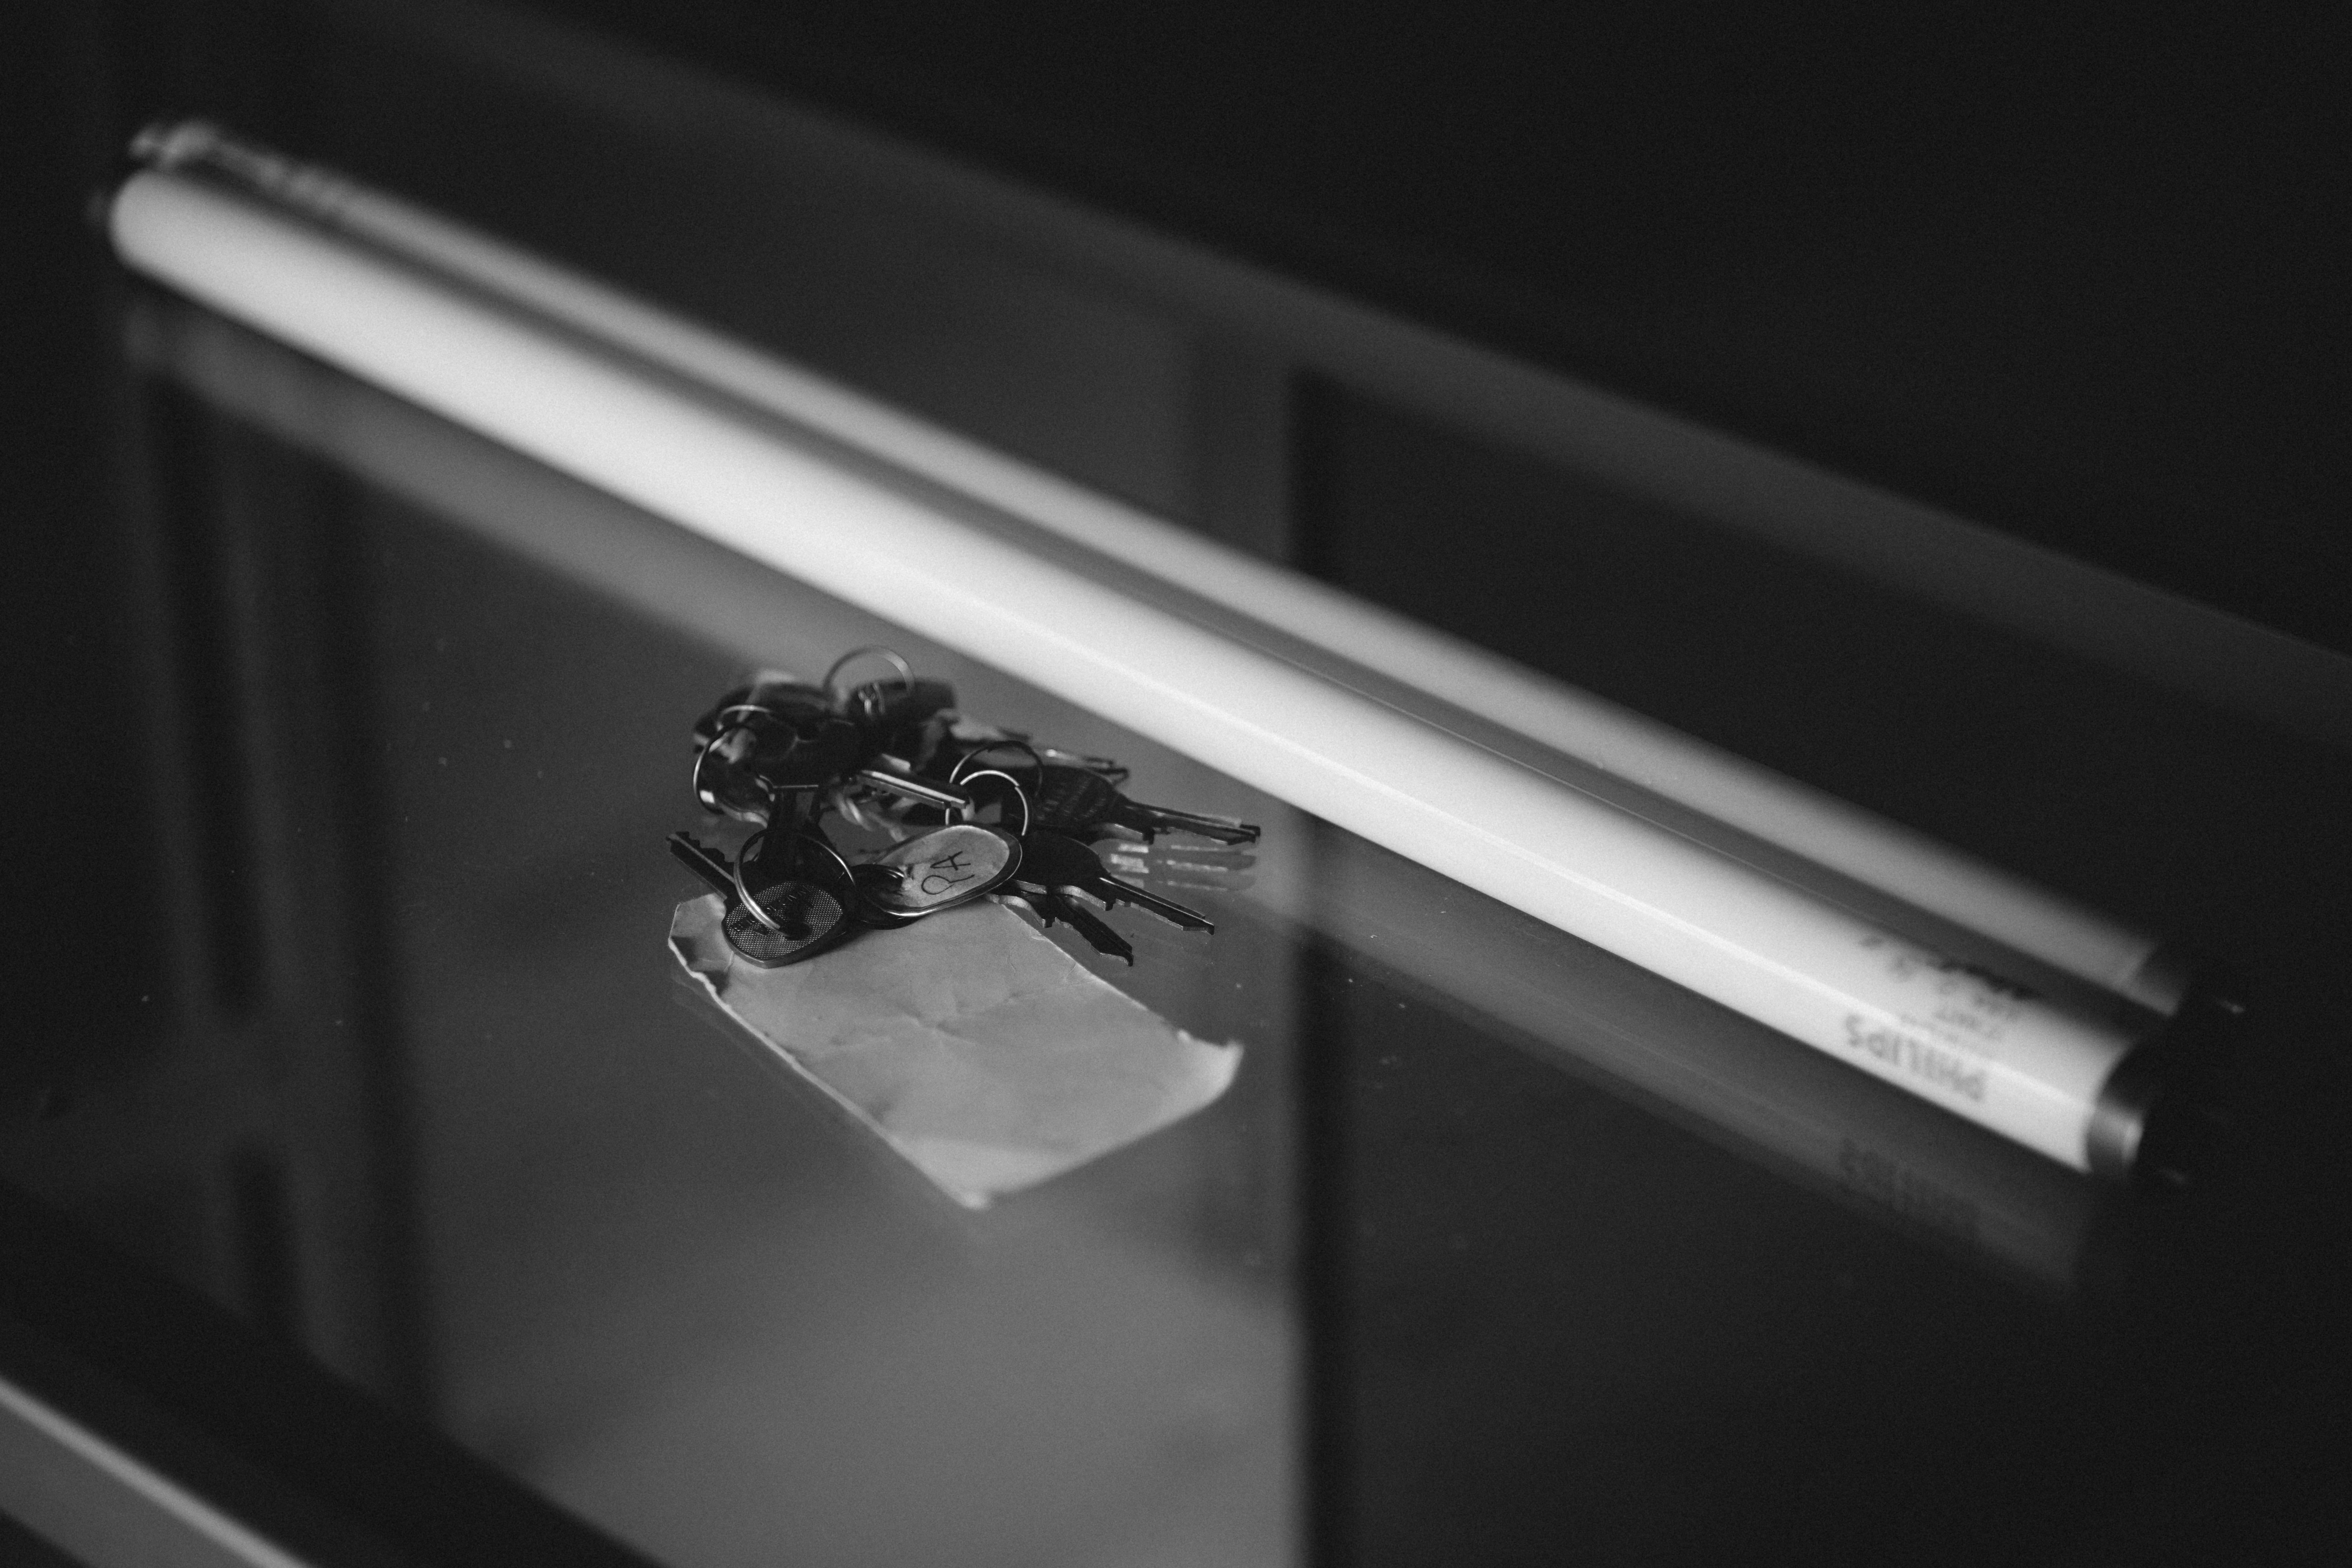 grayscale photography of fluorescent light tube placed beside keys